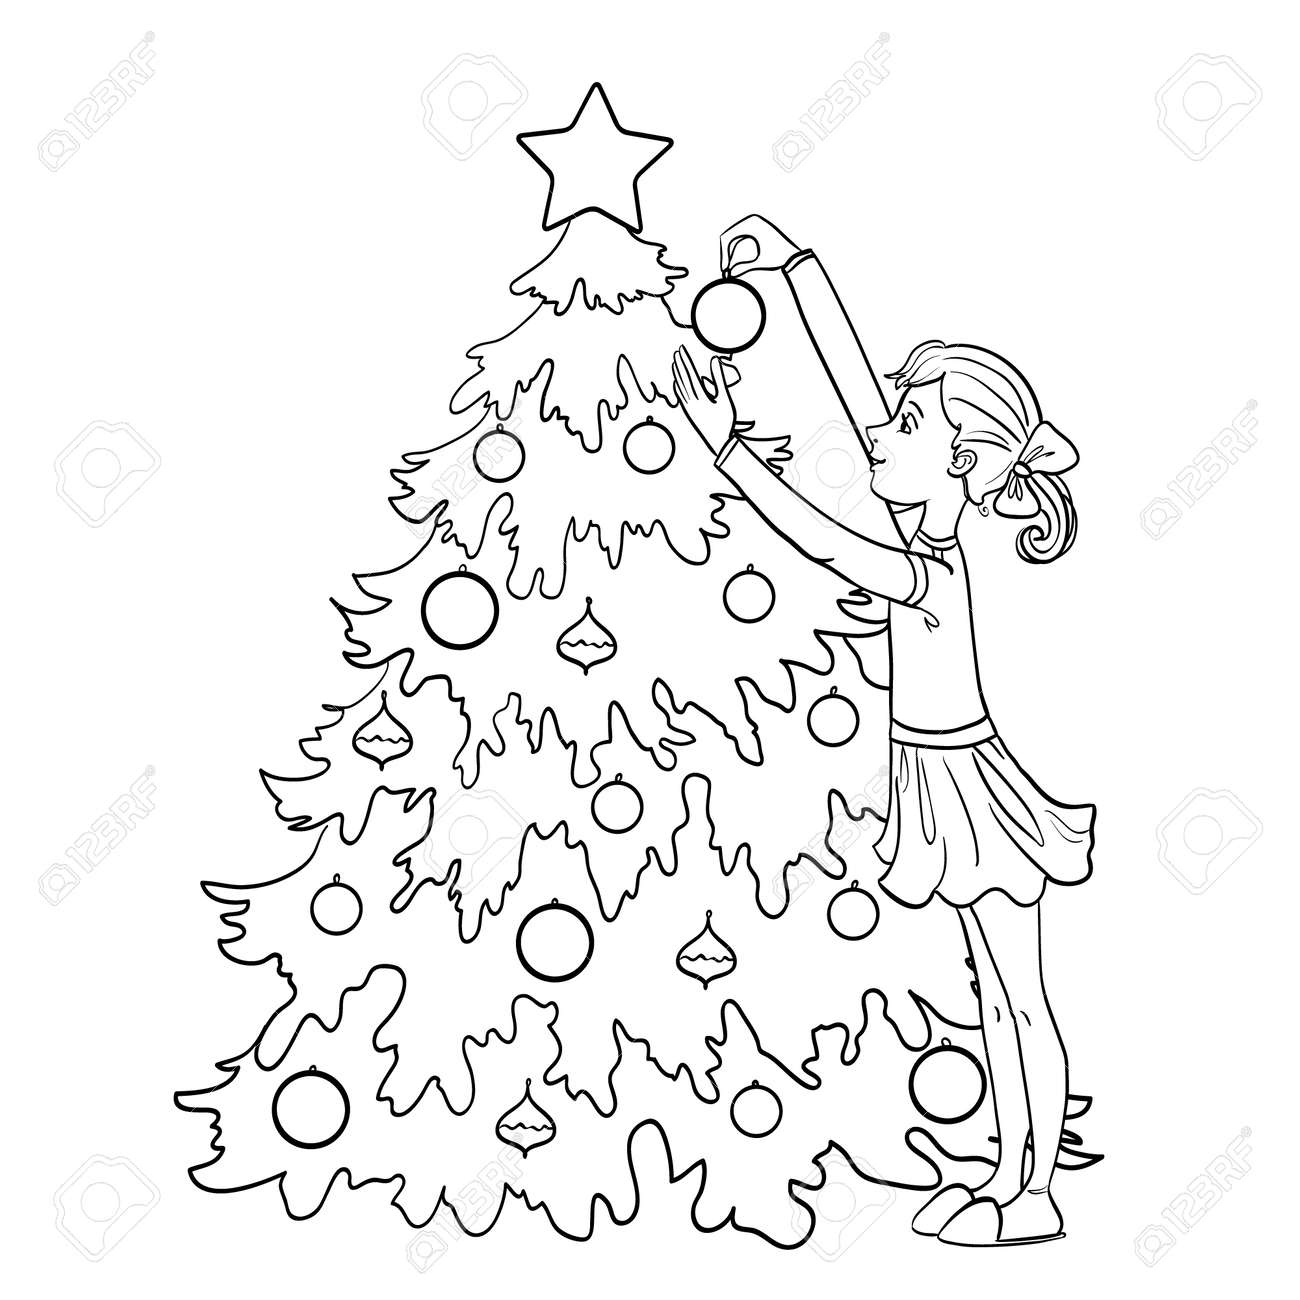 Christmas tree drawing outline - Little Cartoon Girl Decorates Christmas Tree With Balls Outline Isolated On White Stock Vector 39808714